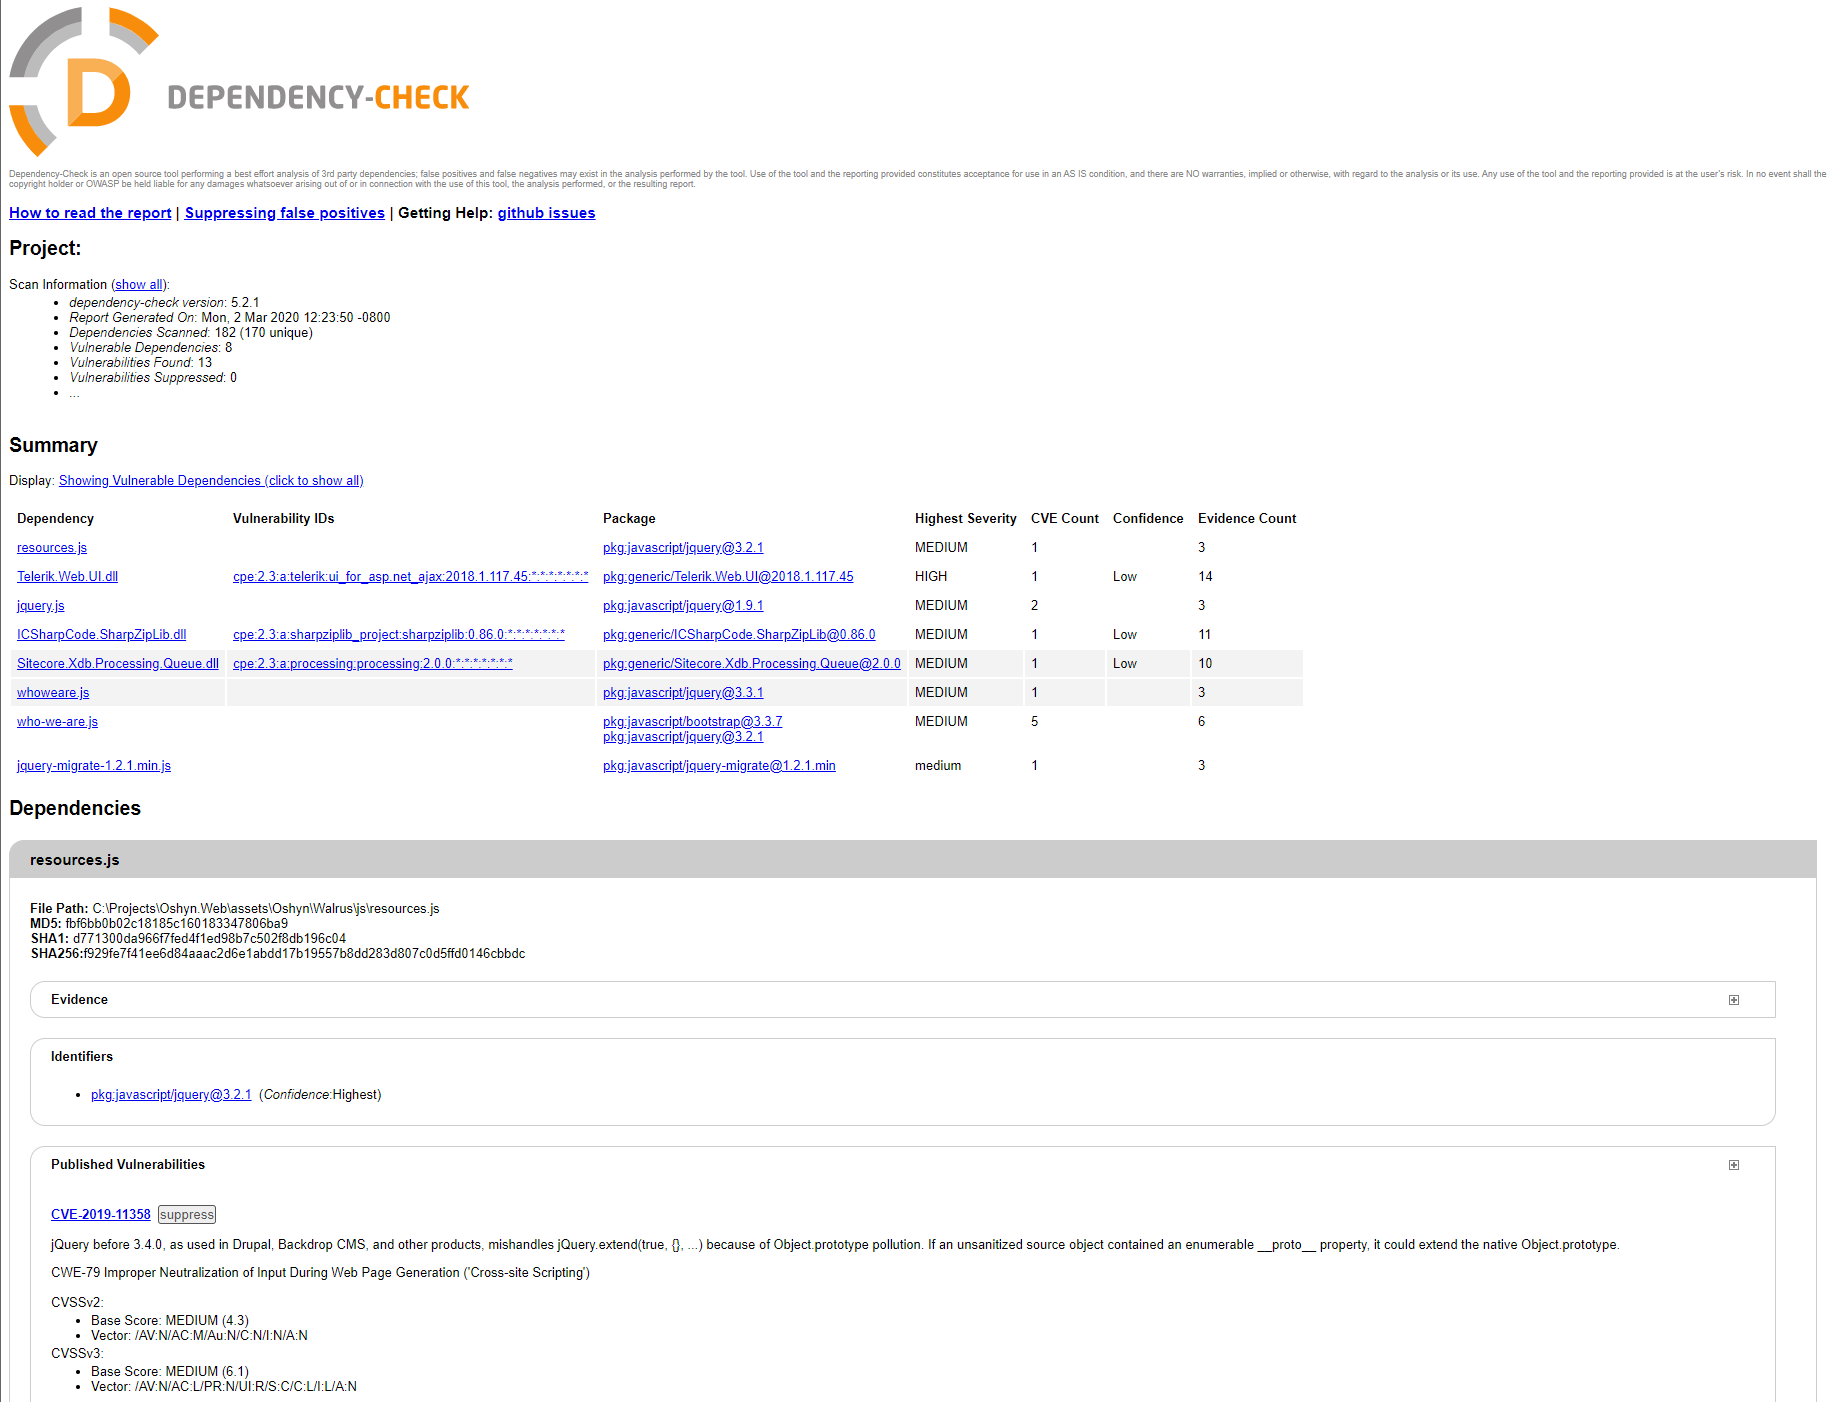 Dependency Check report